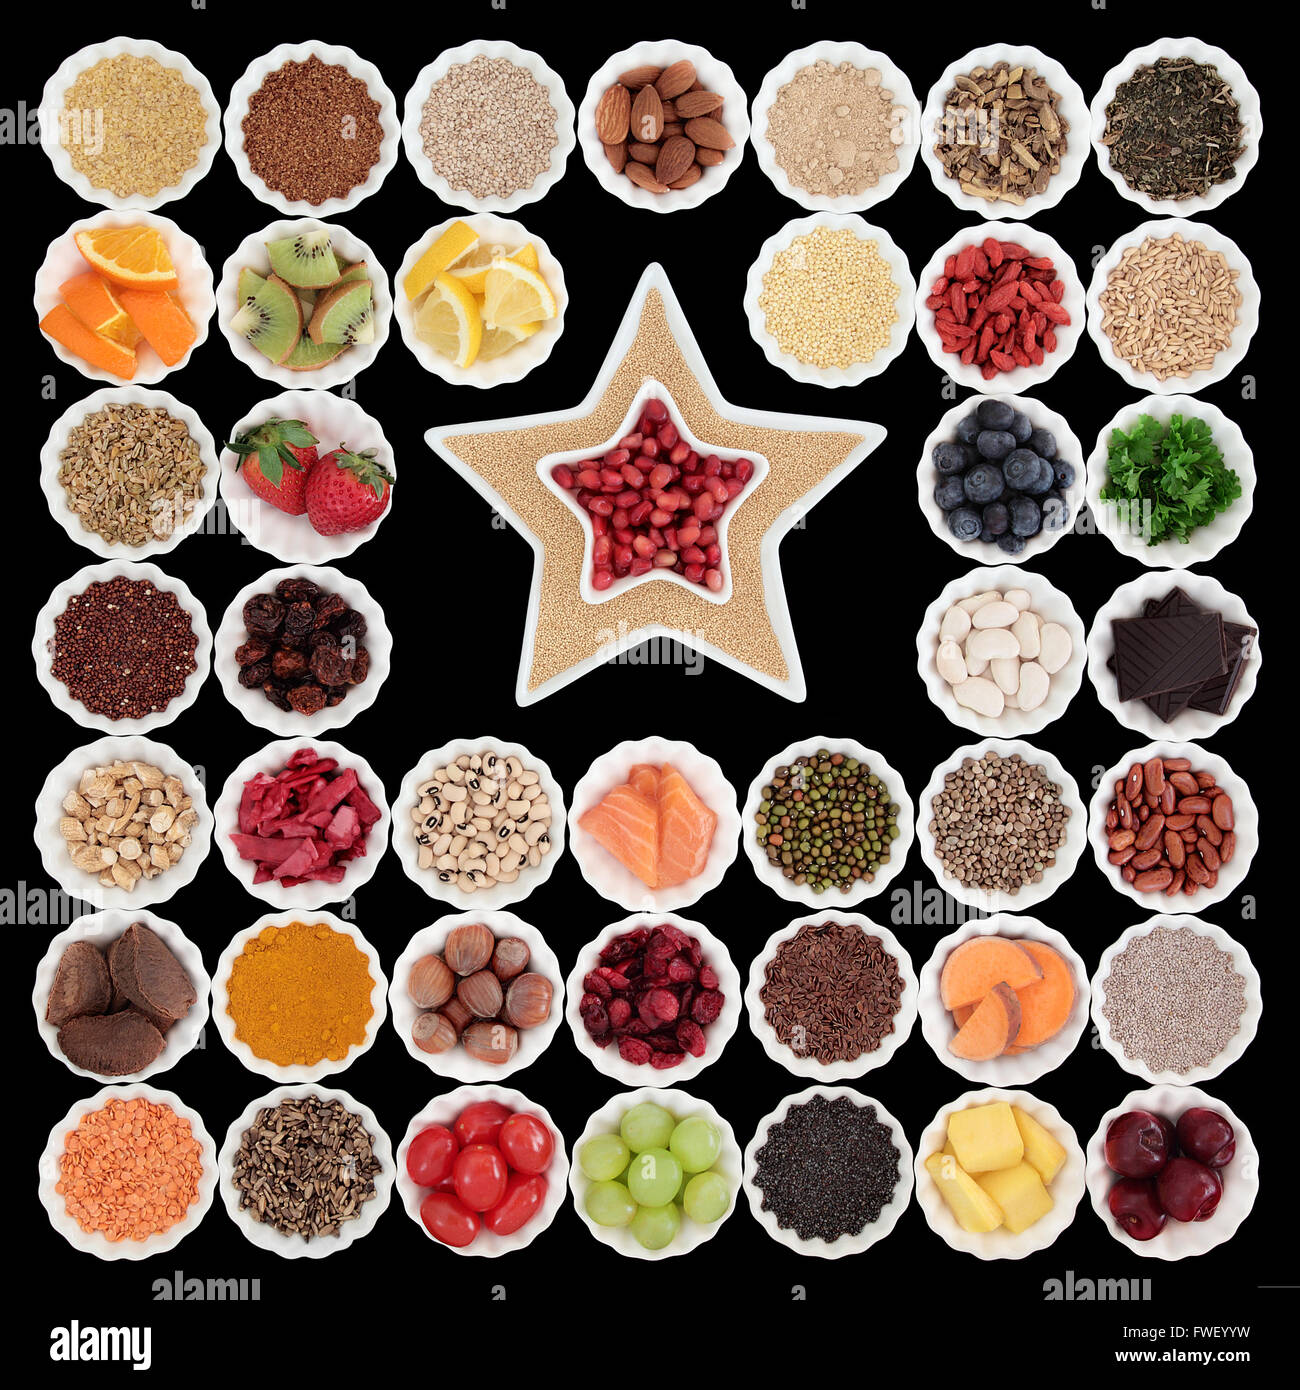 Large health and super food collection in porcelain bowls with star shaped dishes over black background. - Stock Image